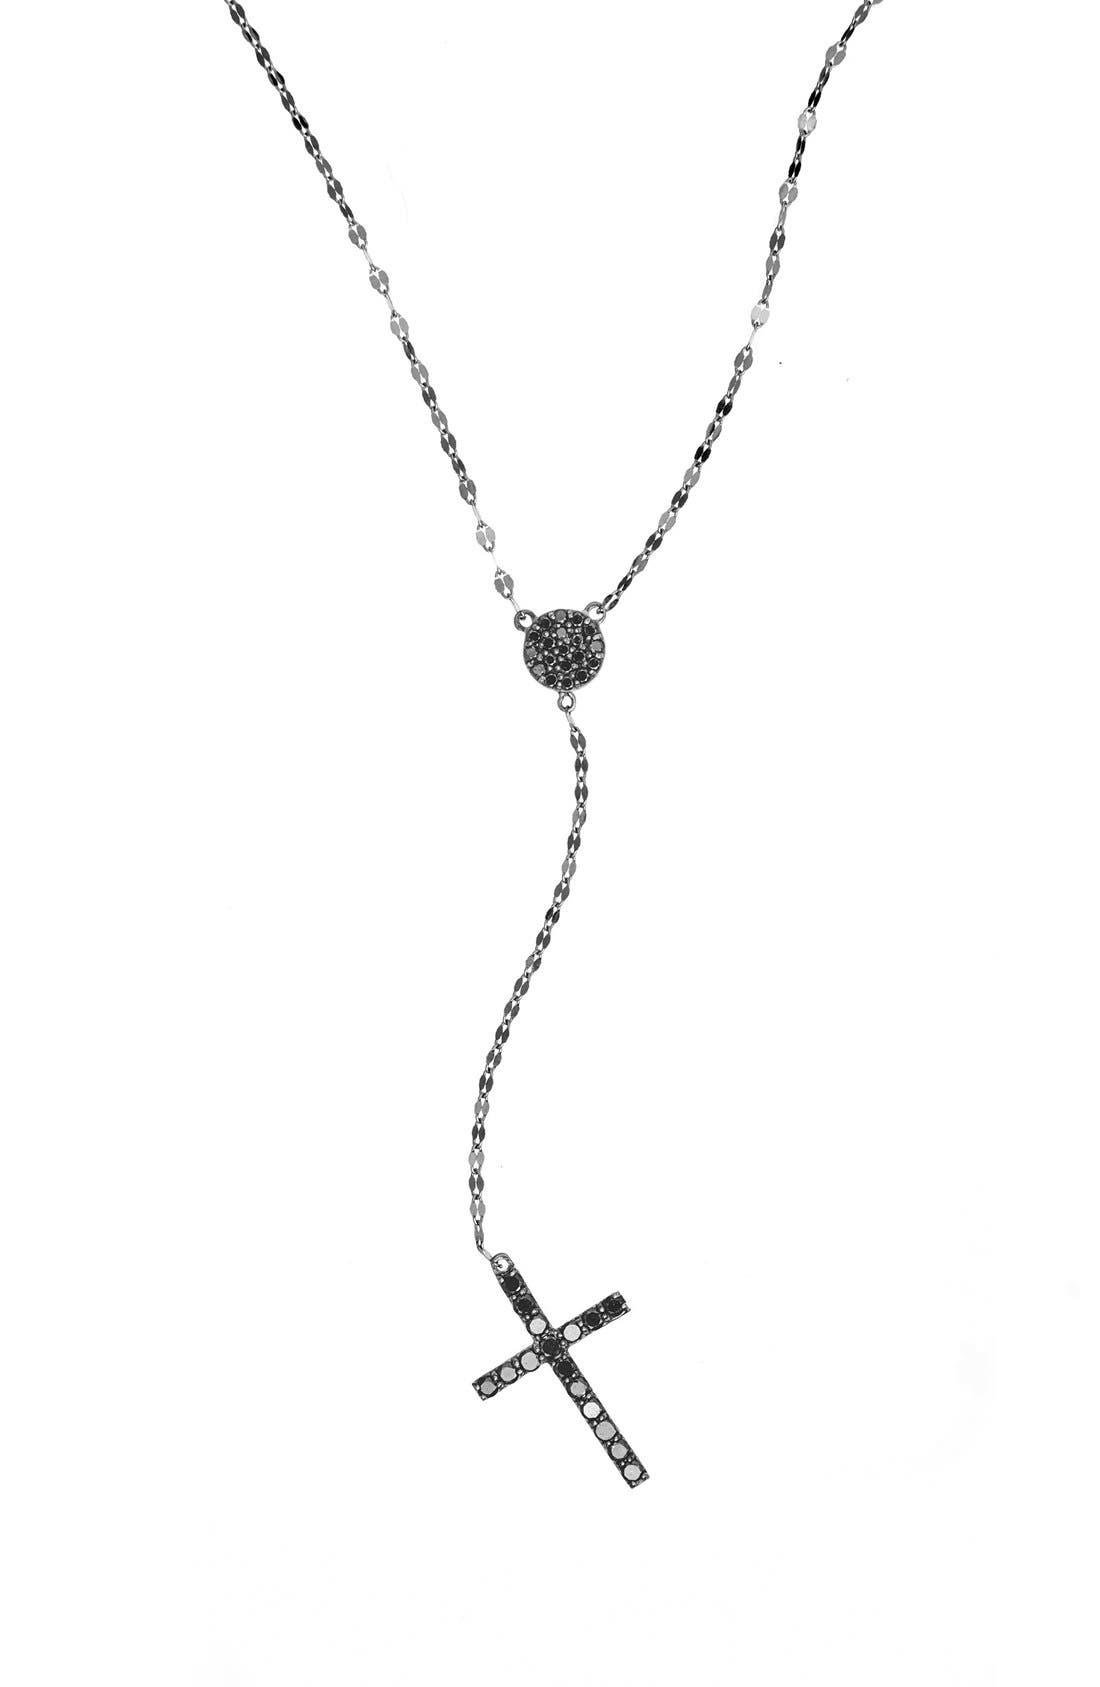 LANA JEWELRY 'Crossary' Y-Necklace, Main, color, 002